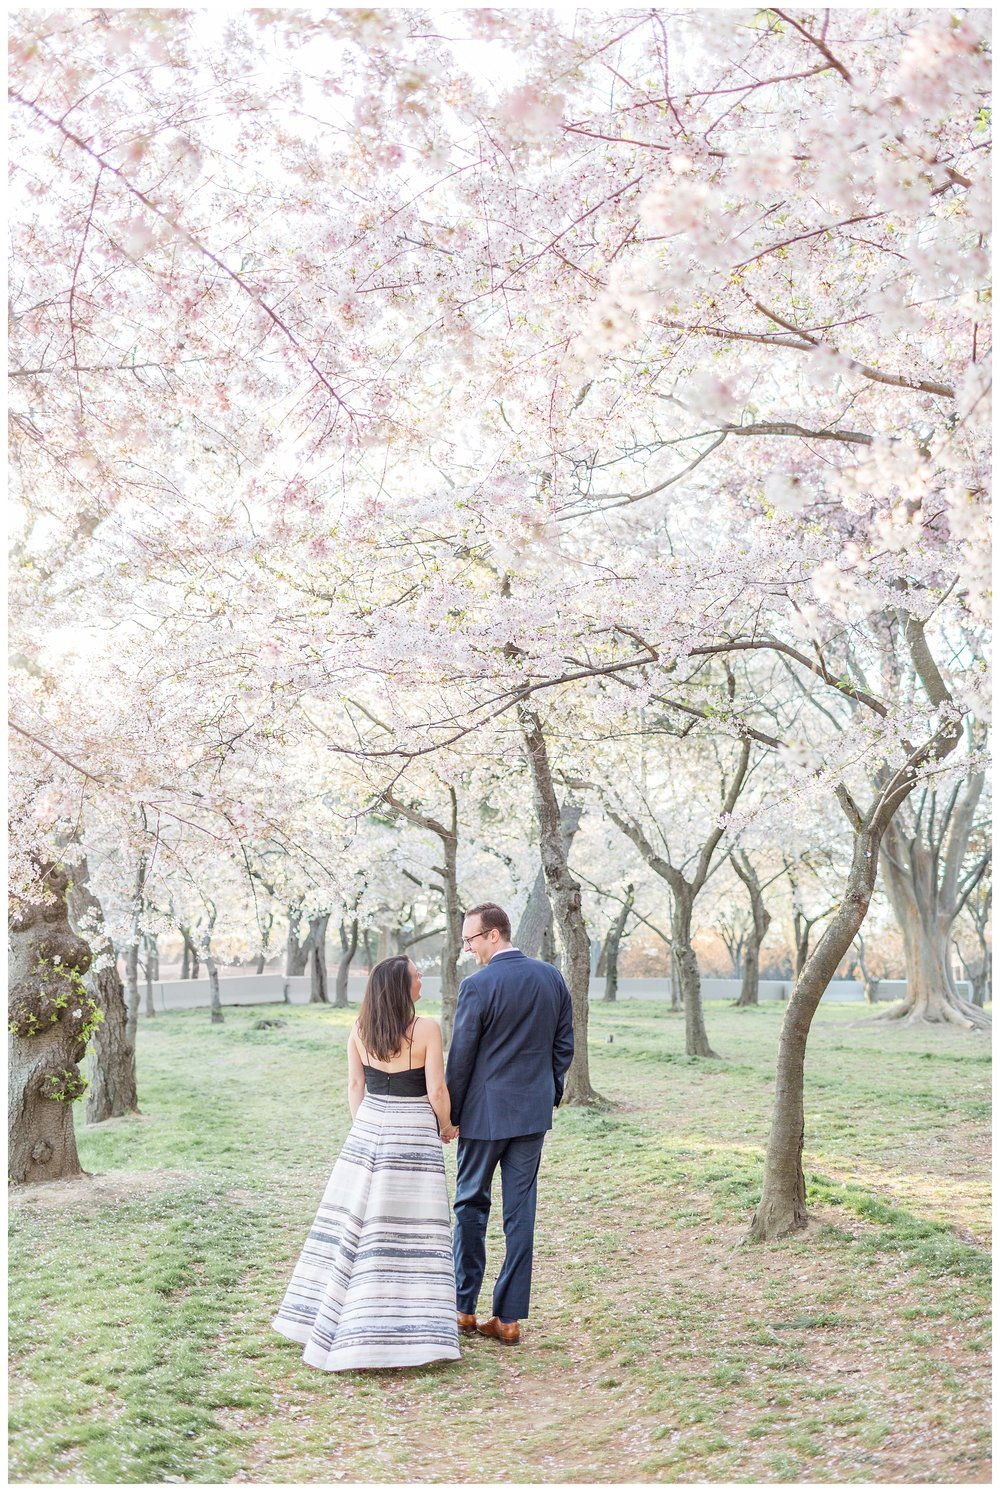 DC Cherry Blossom Engagement Kir2ben Photography_0001.jpg